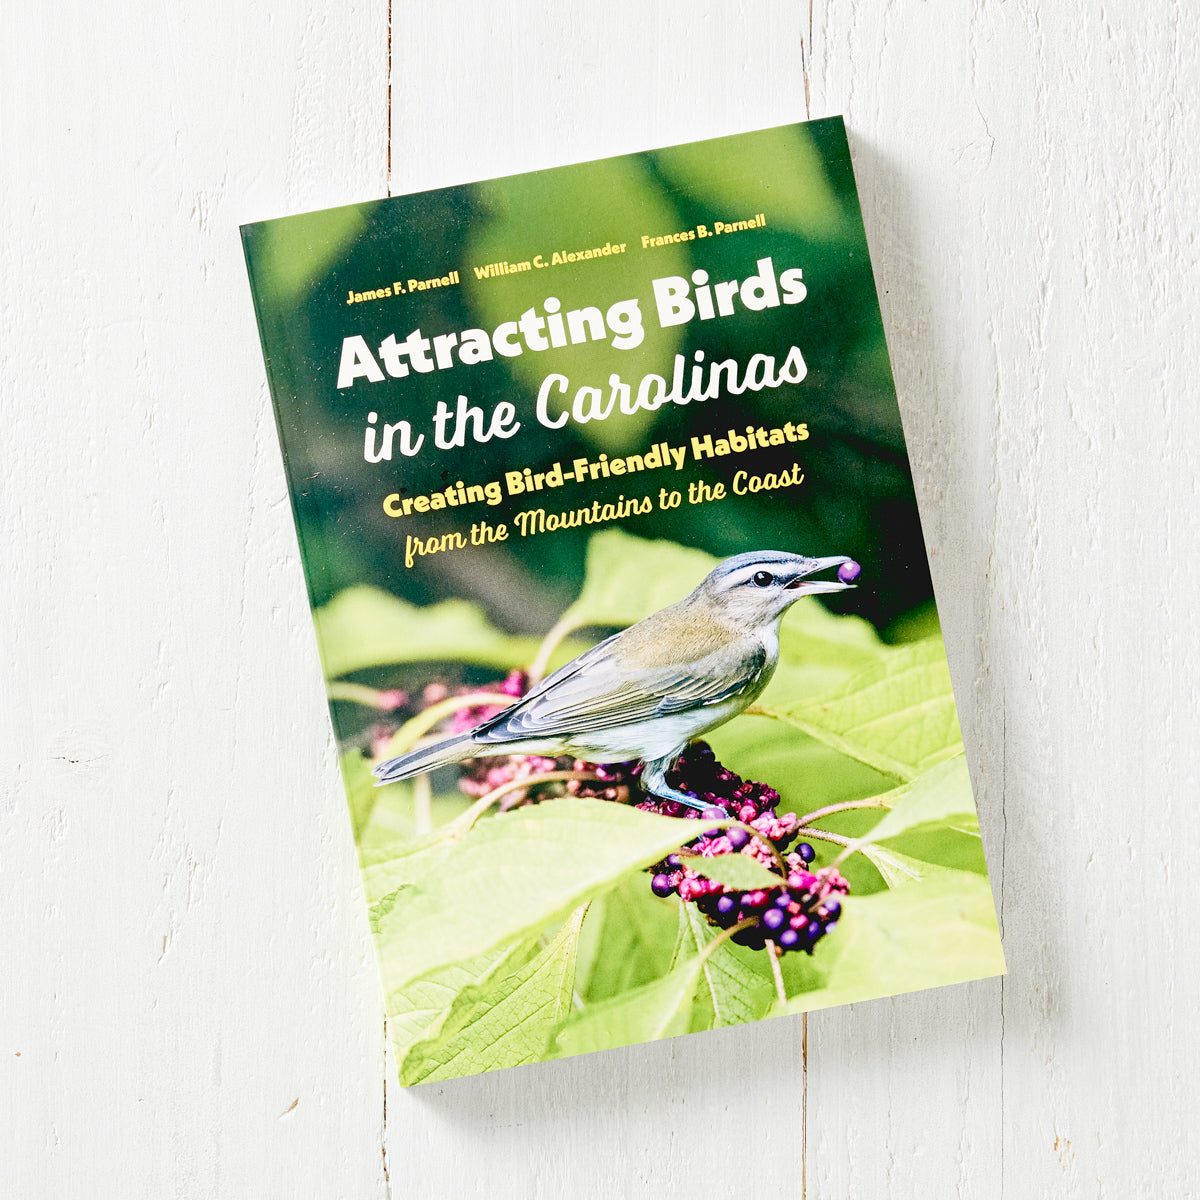 Attracting Birds in the Carolinas: Creating Bird-Friendly Habitats from the Mountains to the Coast